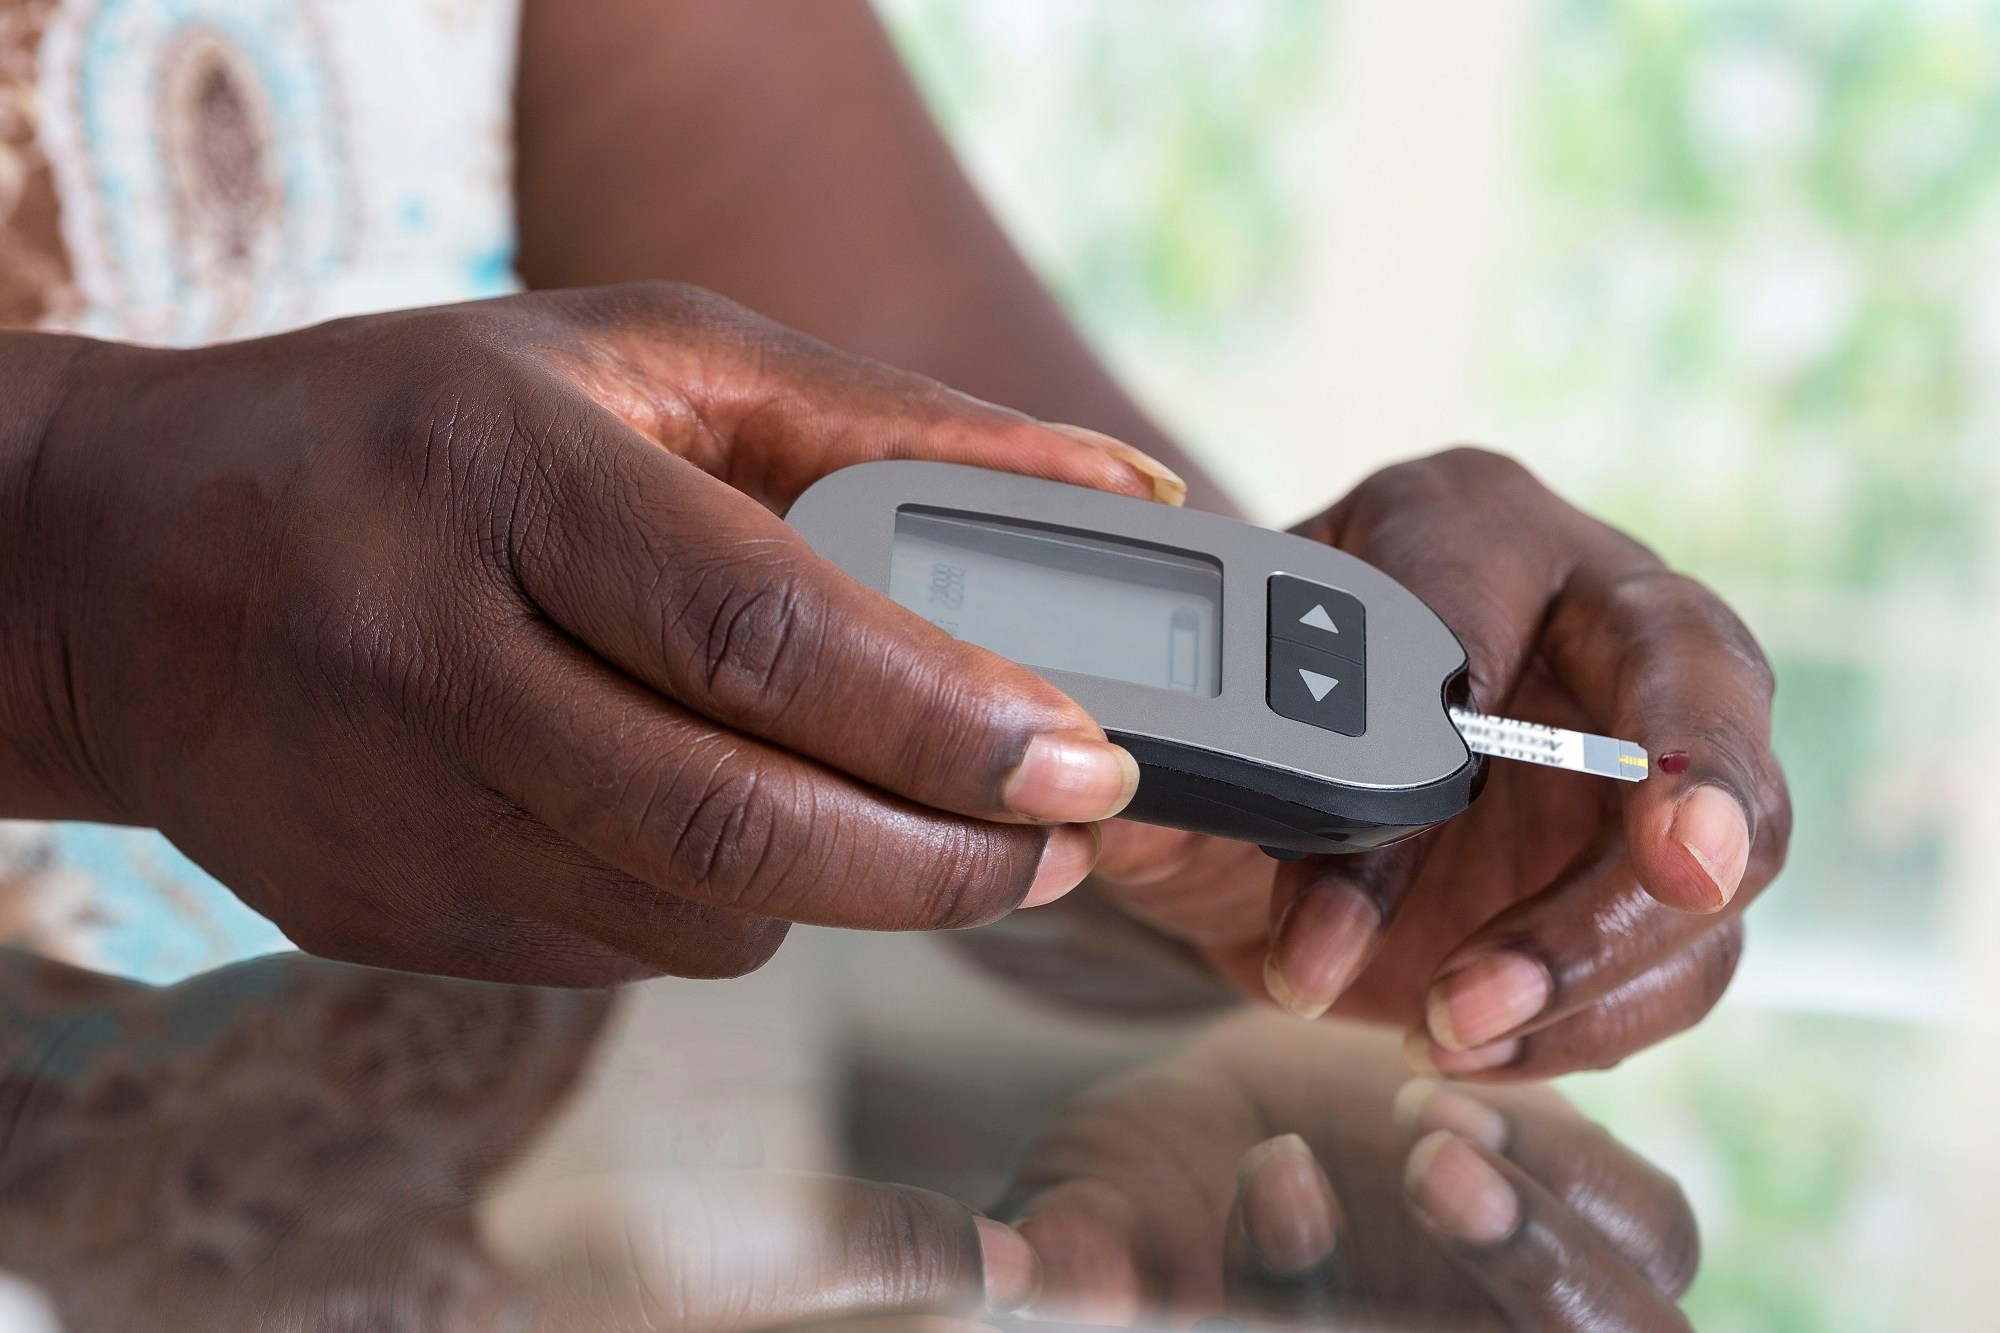 Inadequate Reimbursement May Inhibit Diabetes Prevention Program